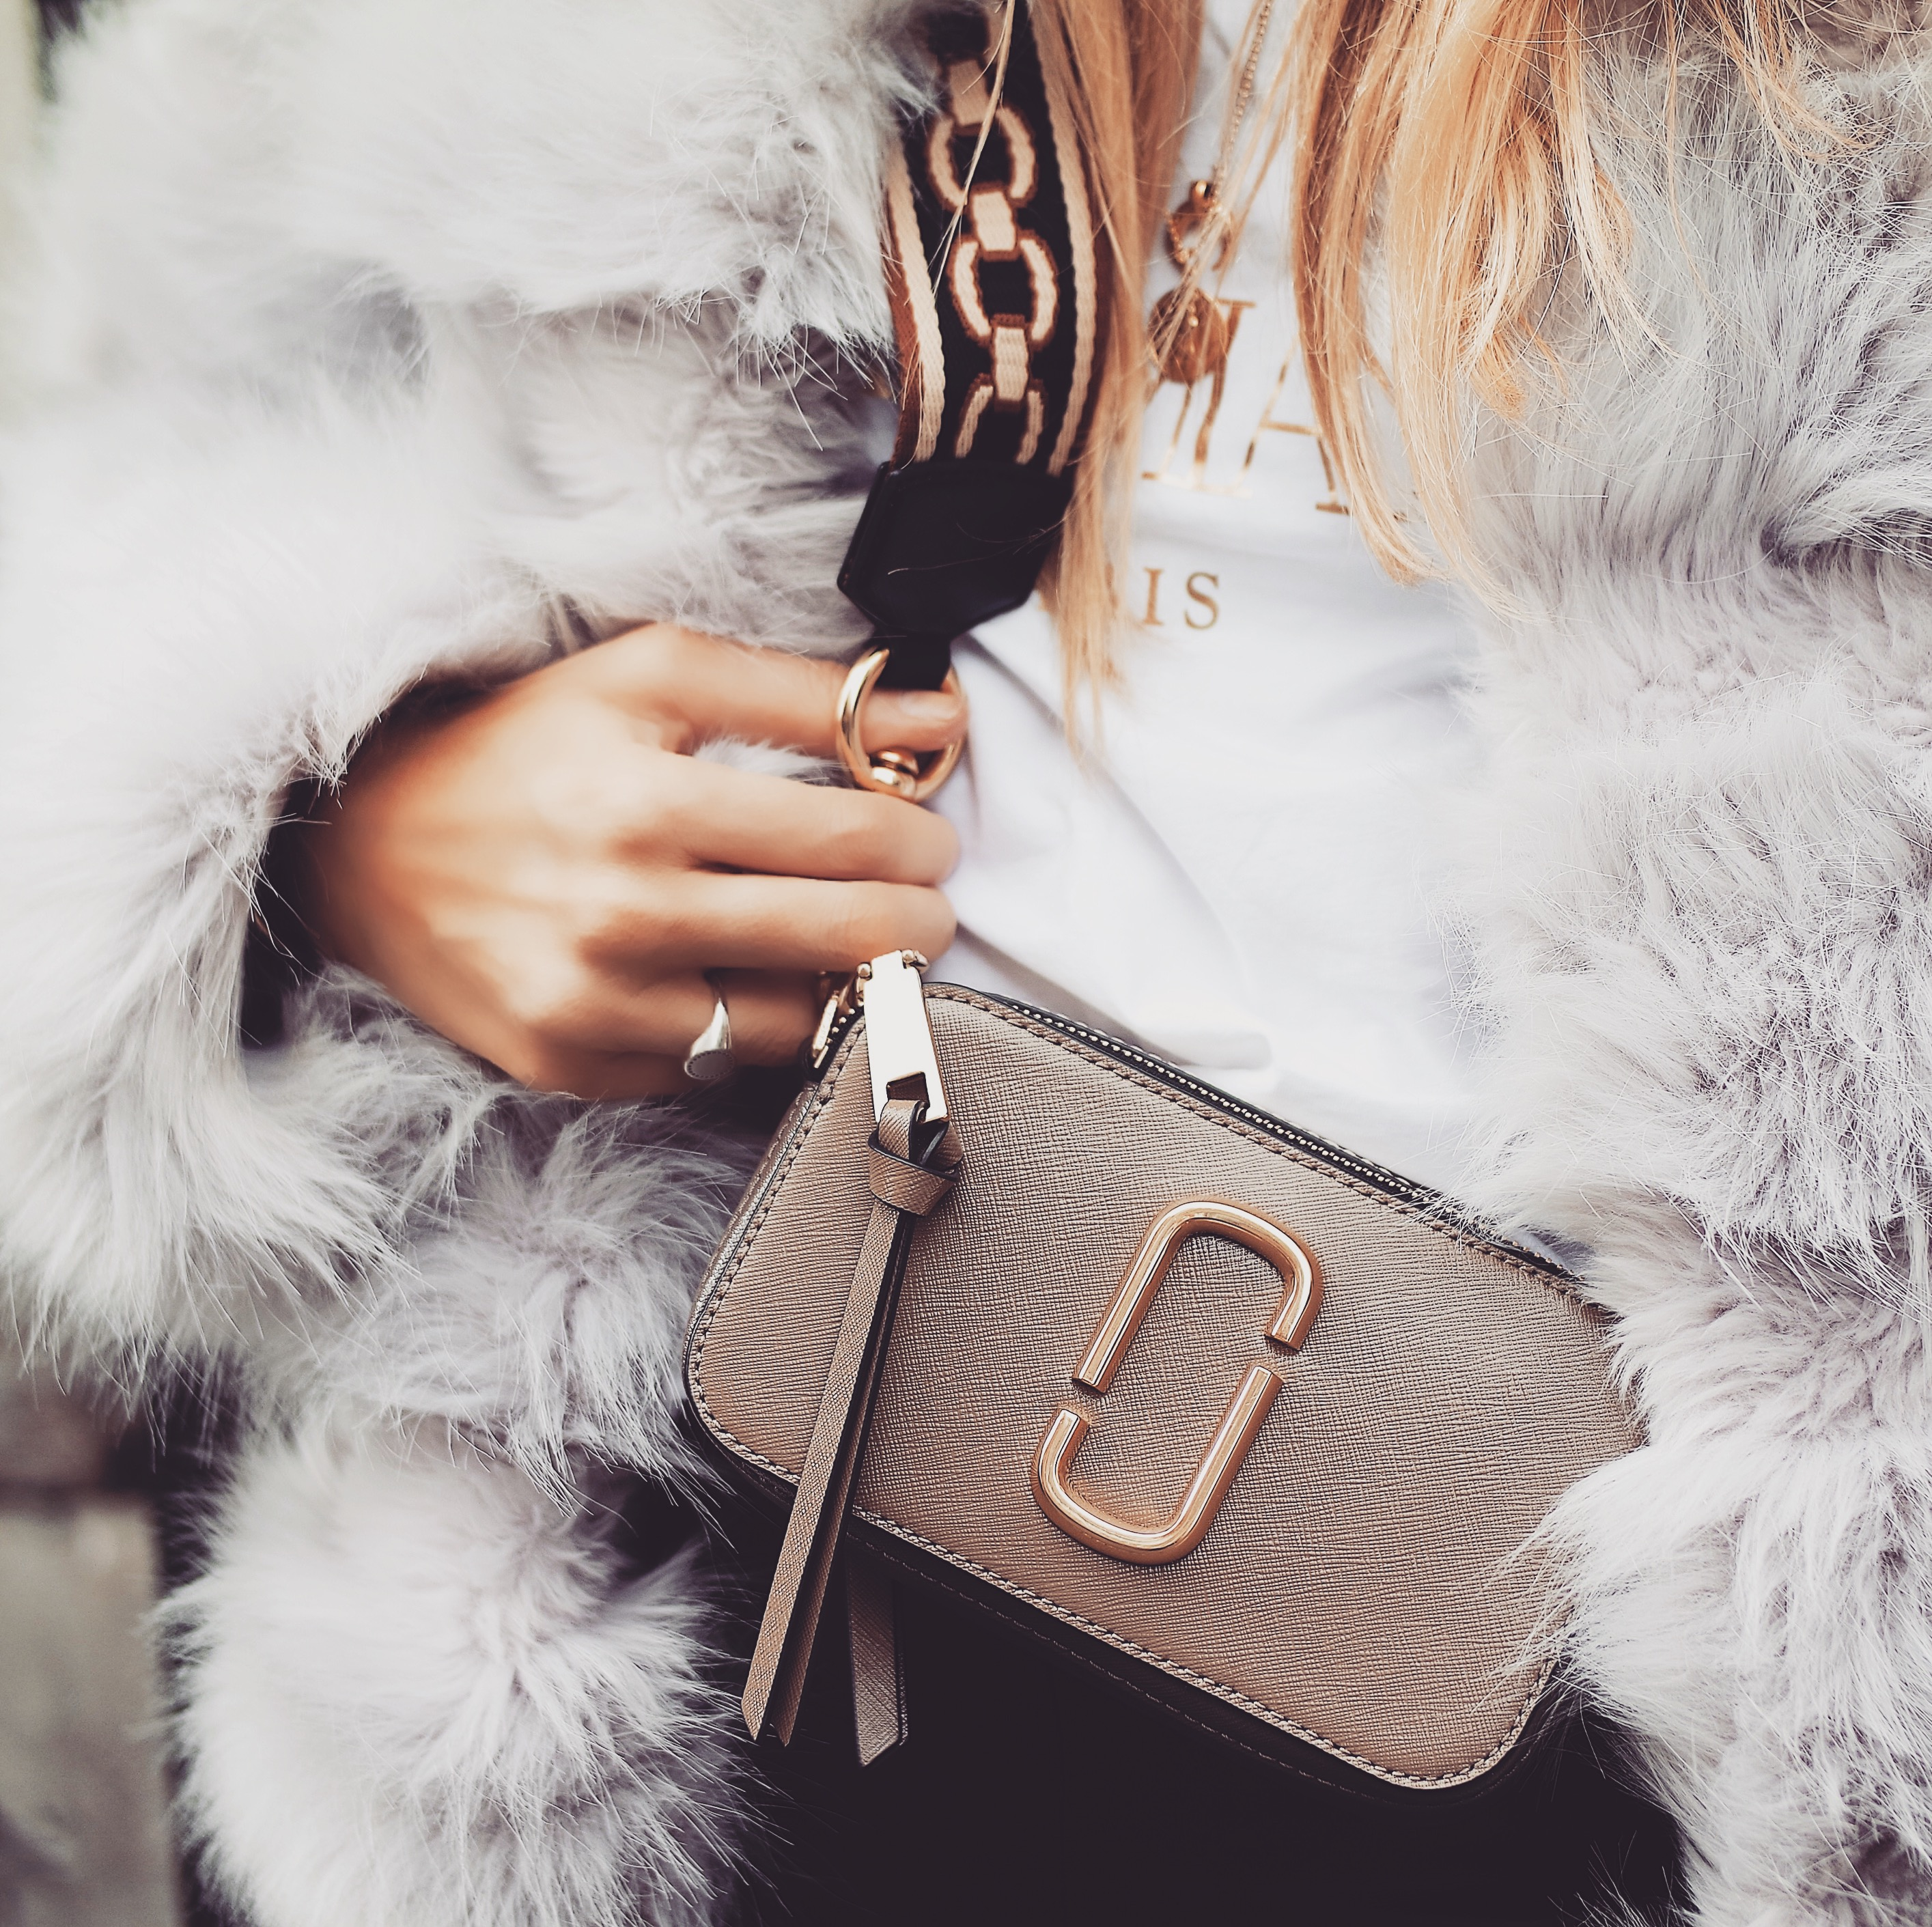 LFW Outfit -Marc Jacobs Bag